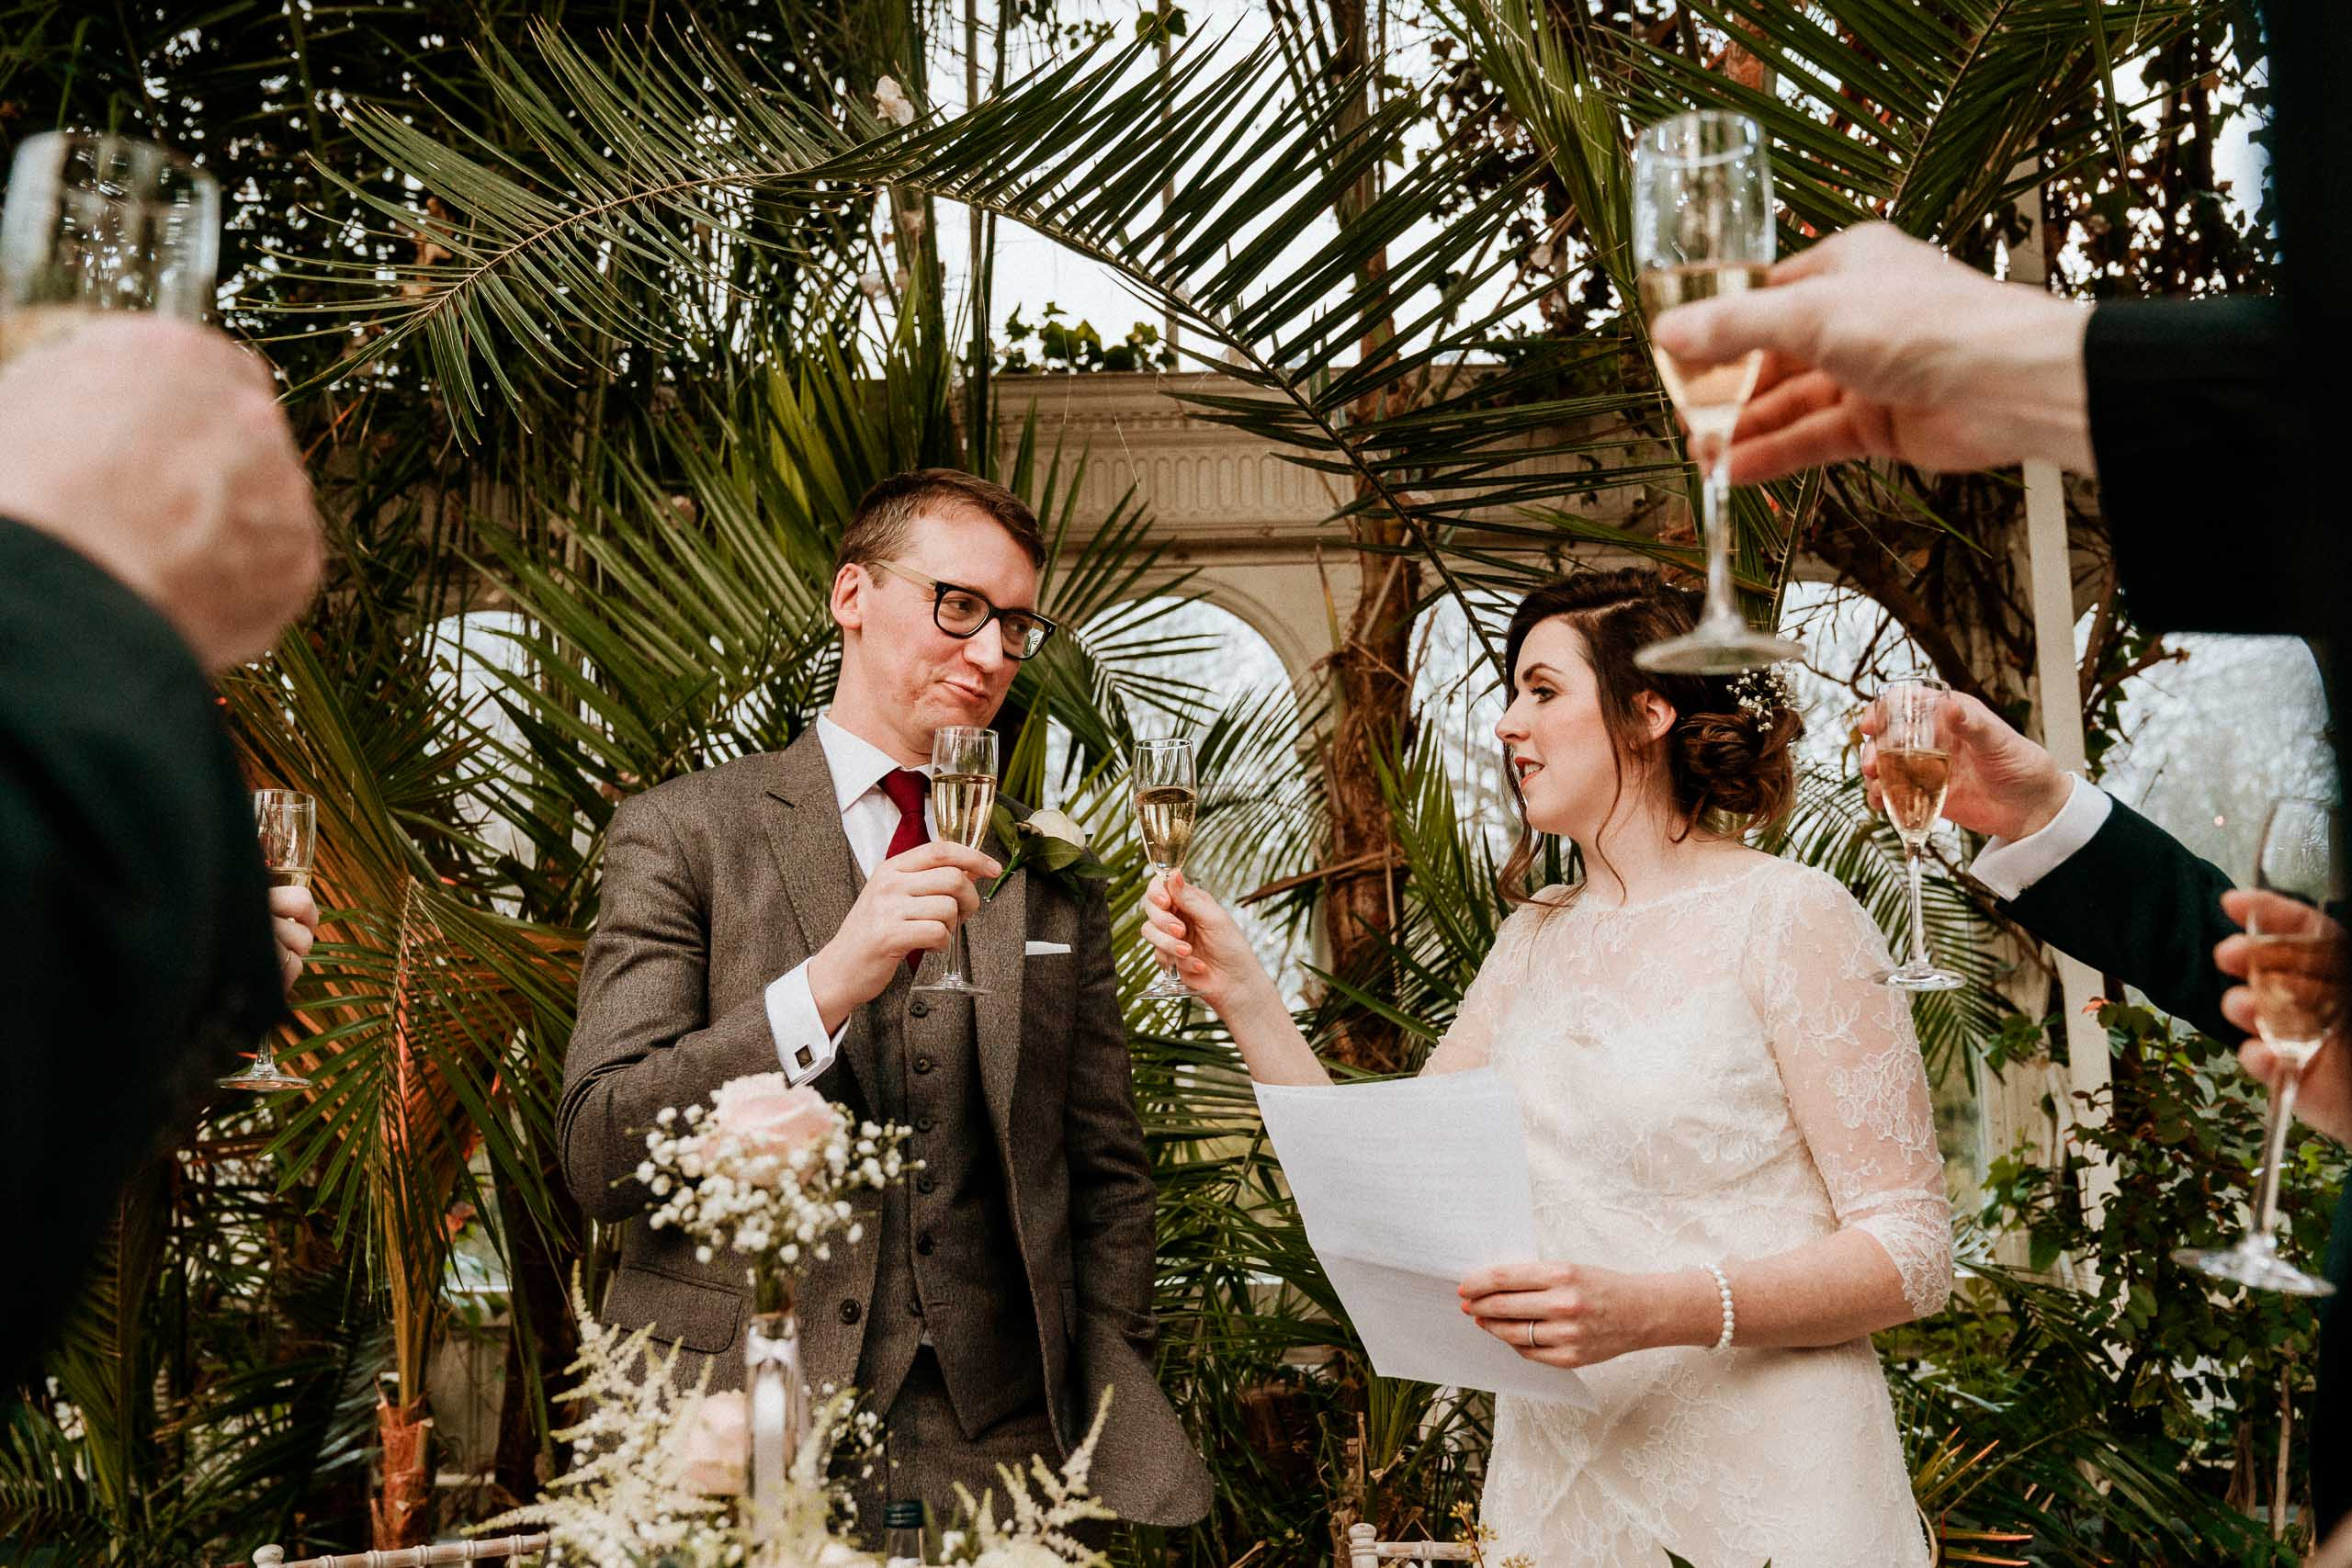 guests cheering glasses near bride and groom